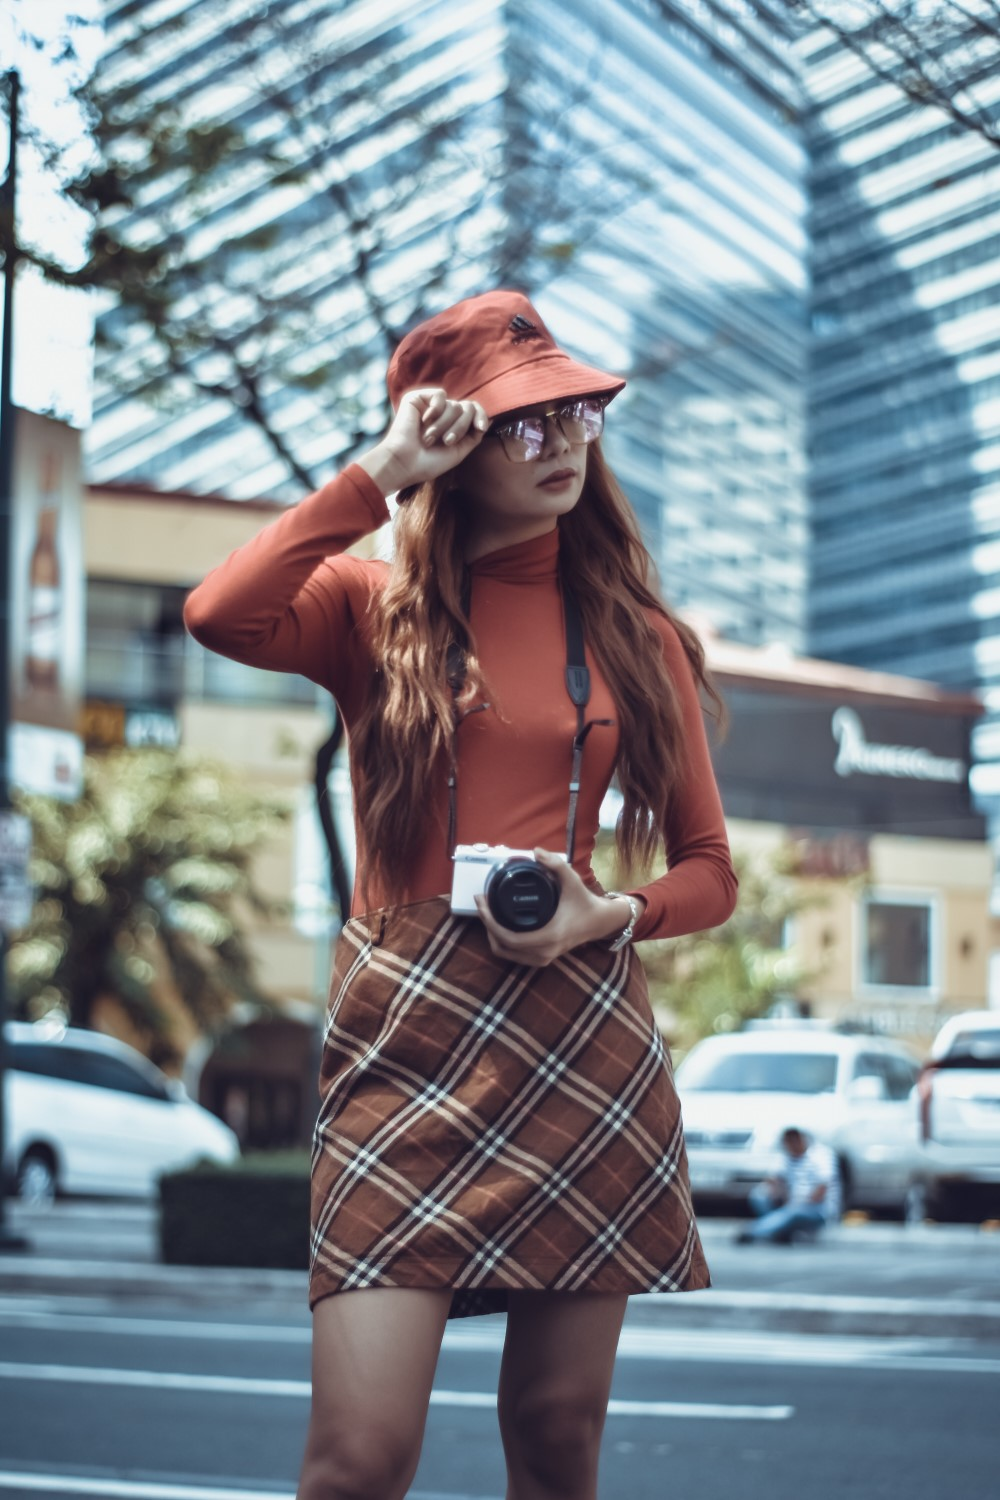 stylish woman in hat and plaid skirt with camera